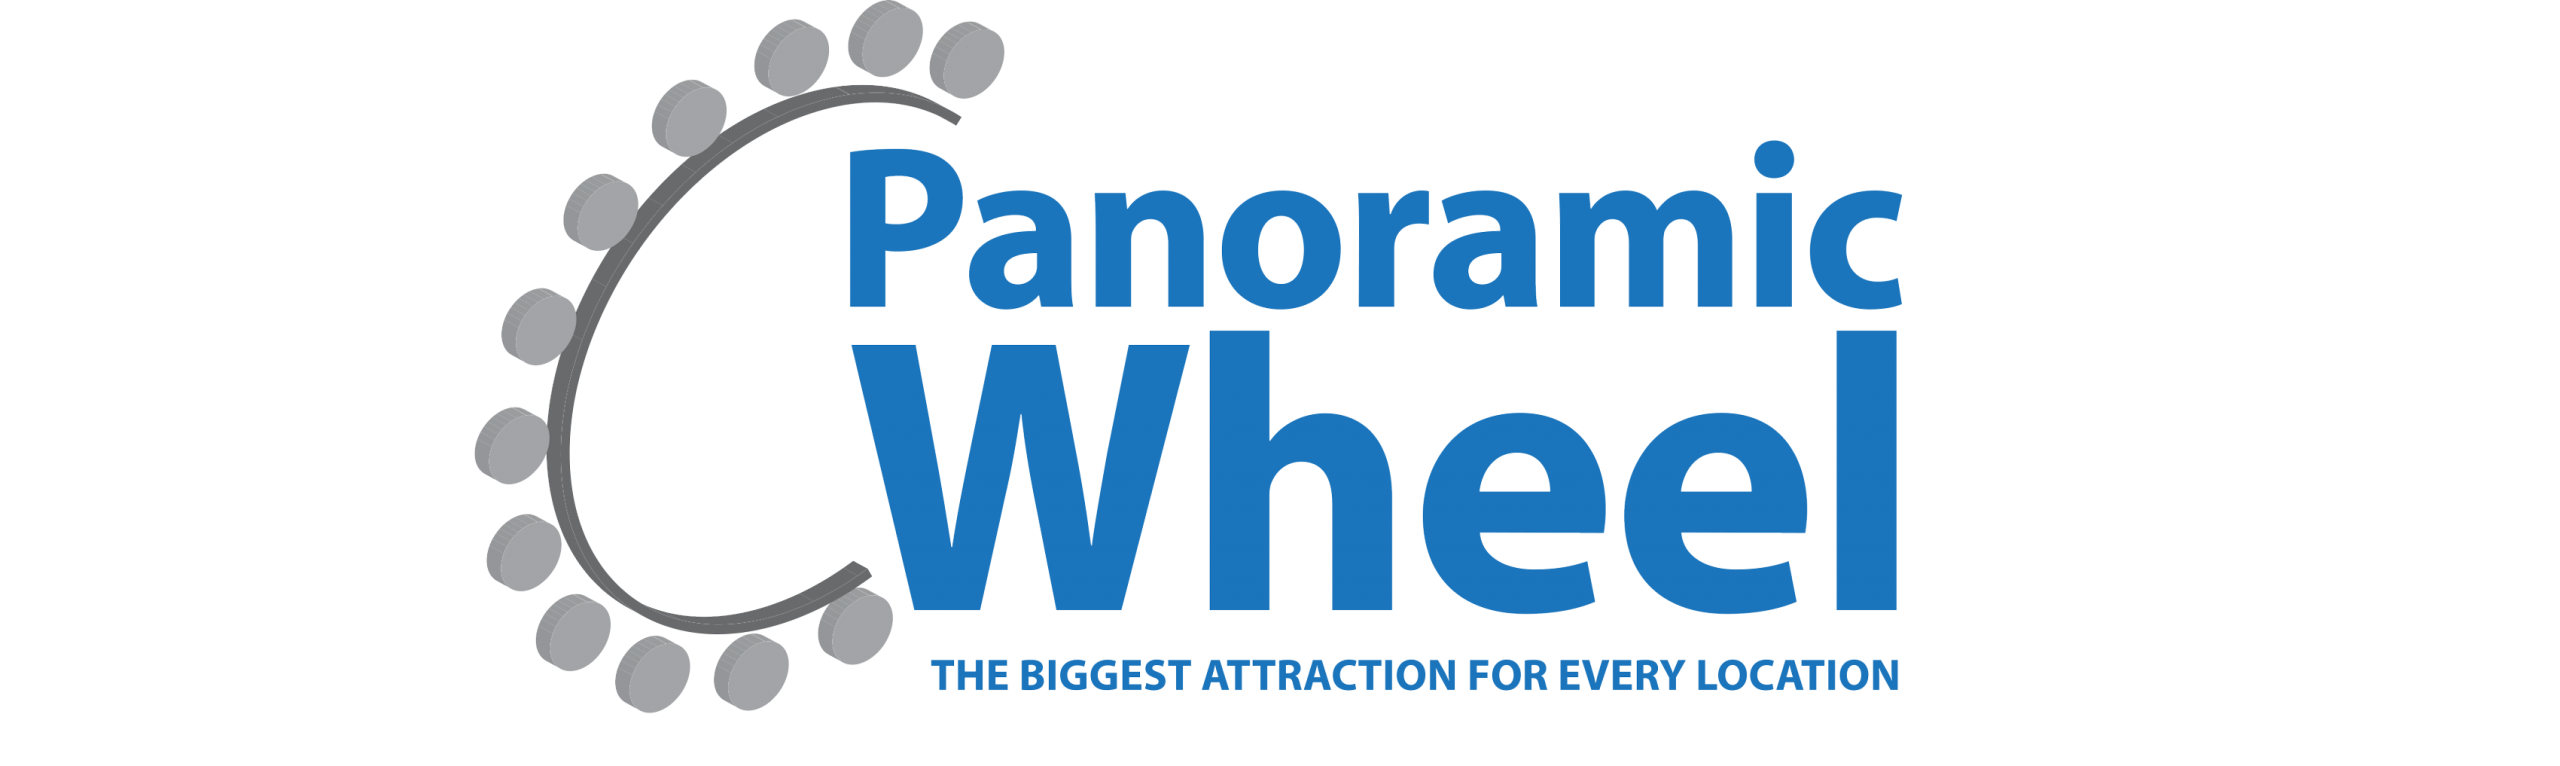 Panoramic Wheel Company